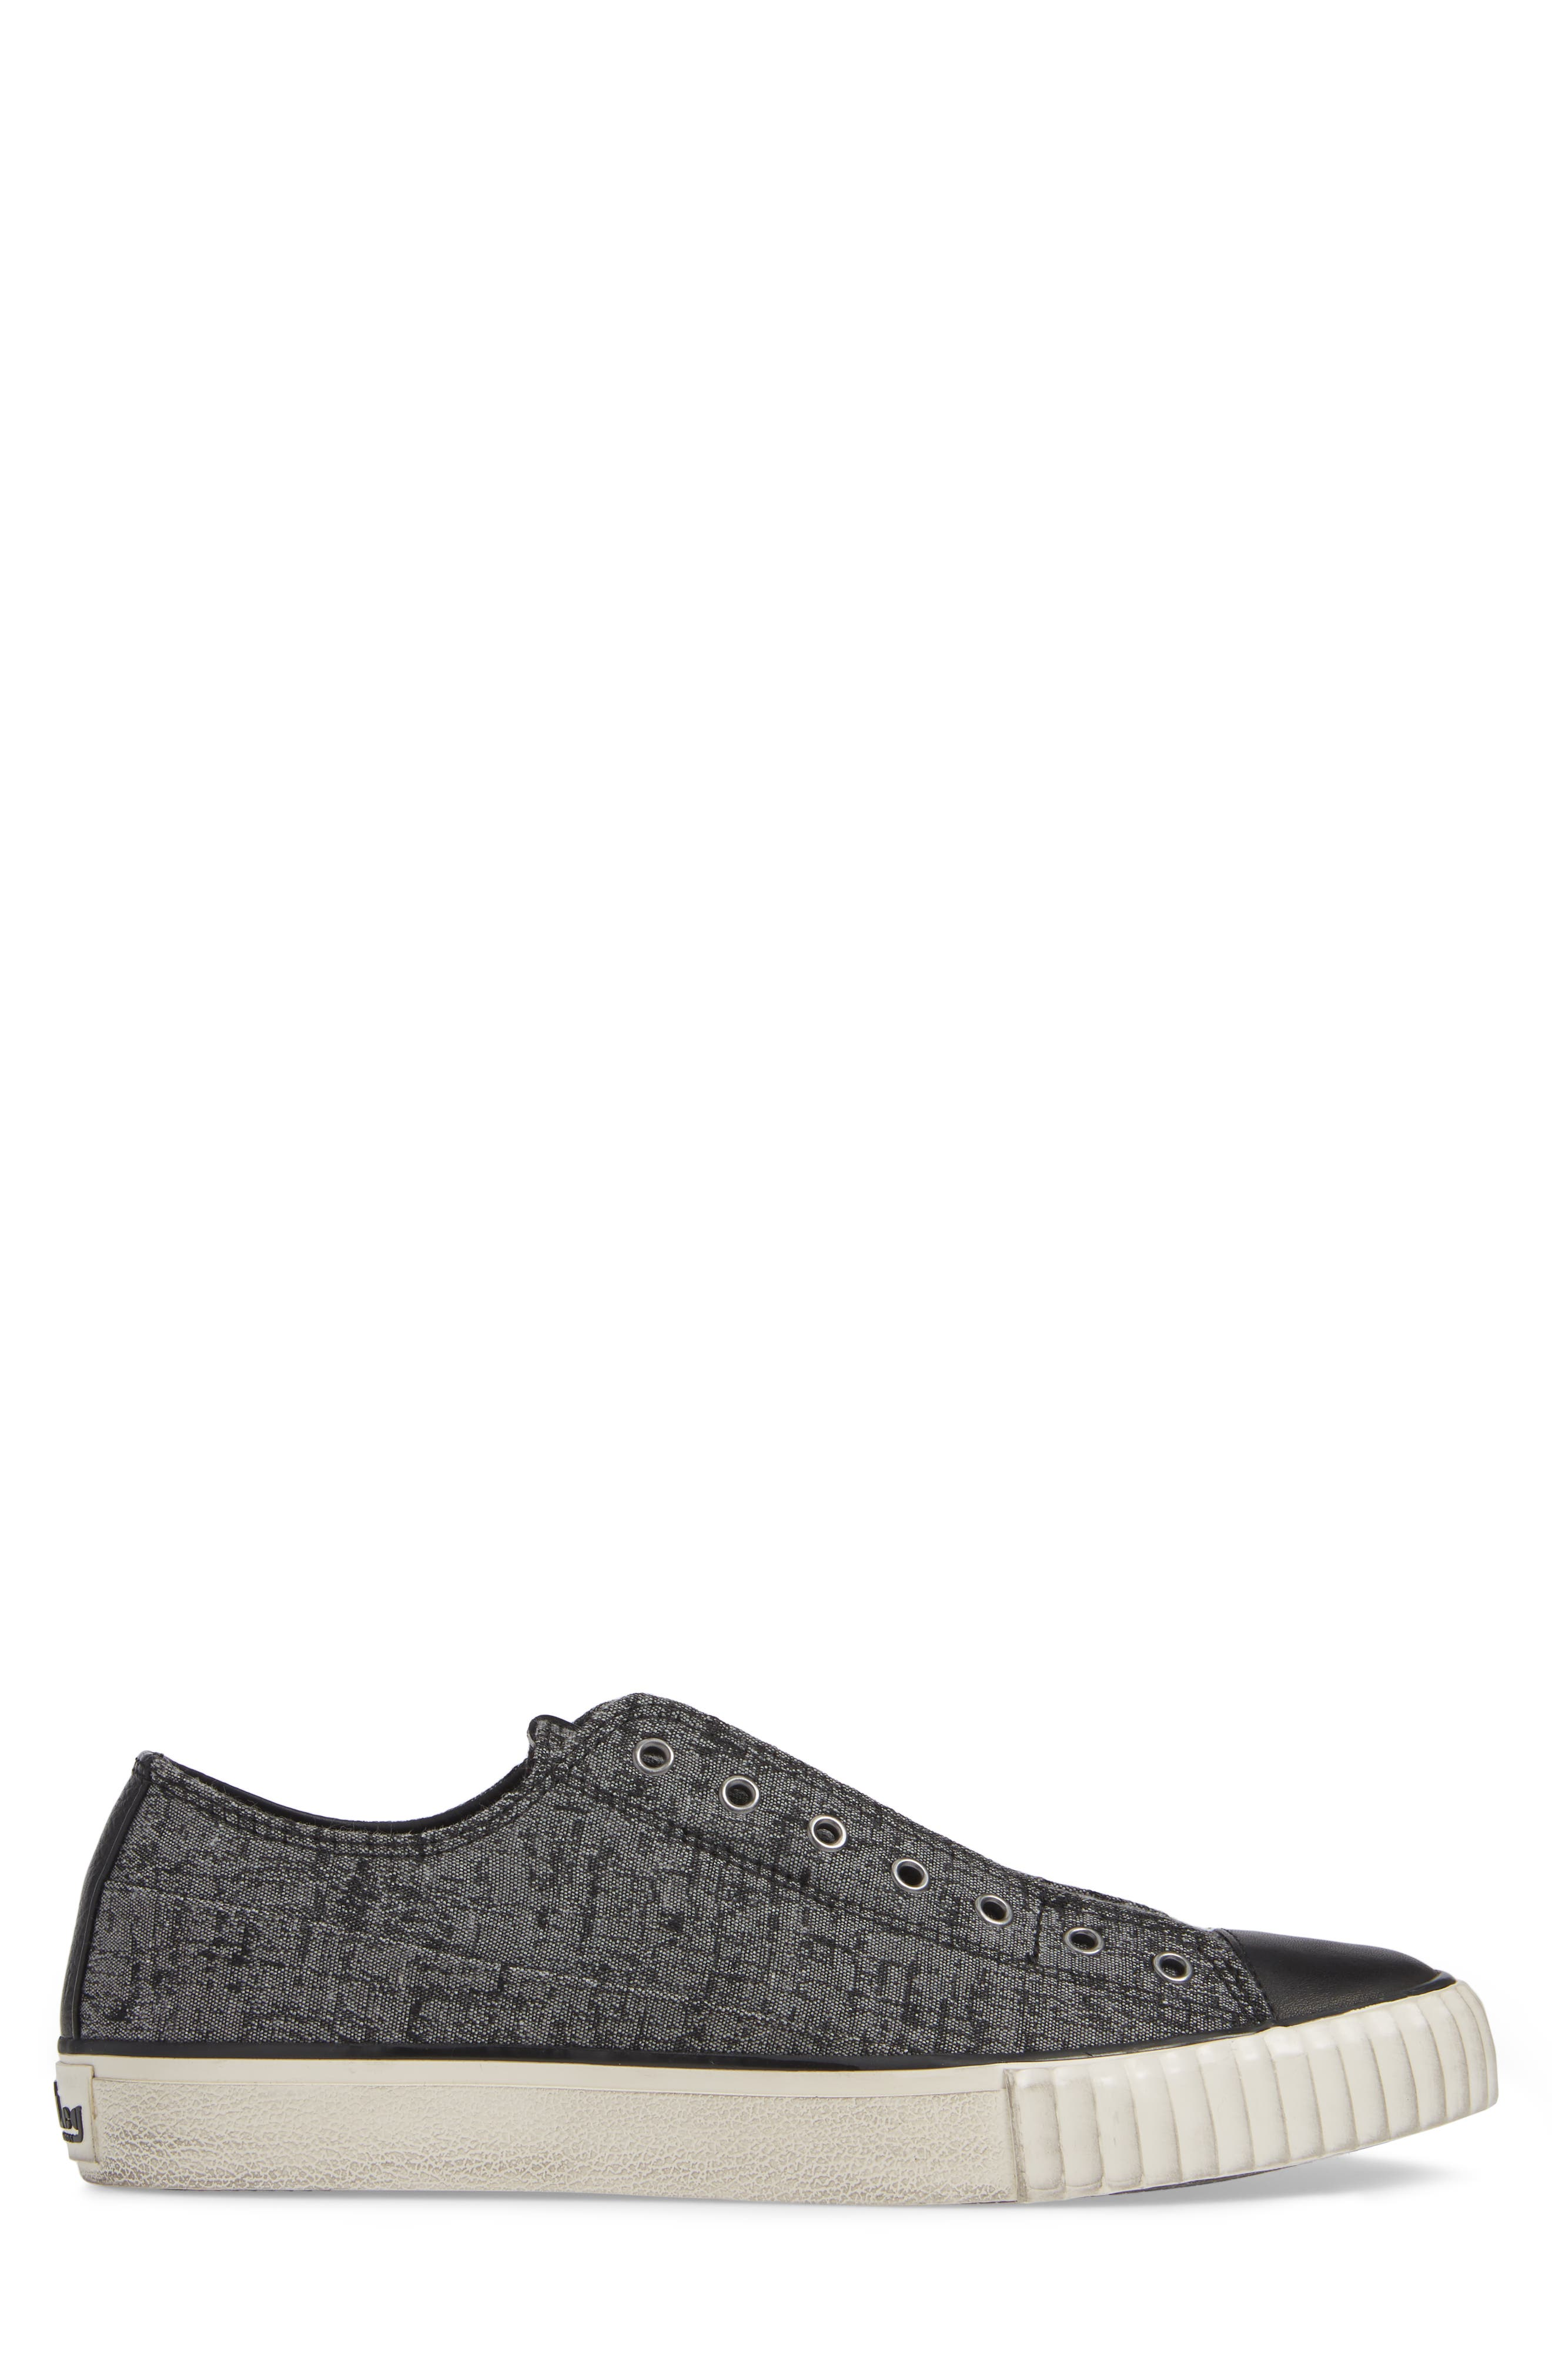 BOOTLEG BY JOHN VARVATOS, John Varvatos Star USA Bootleg Laceless Sneaker, Alternate thumbnail 3, color, STONE GREY CANVAS